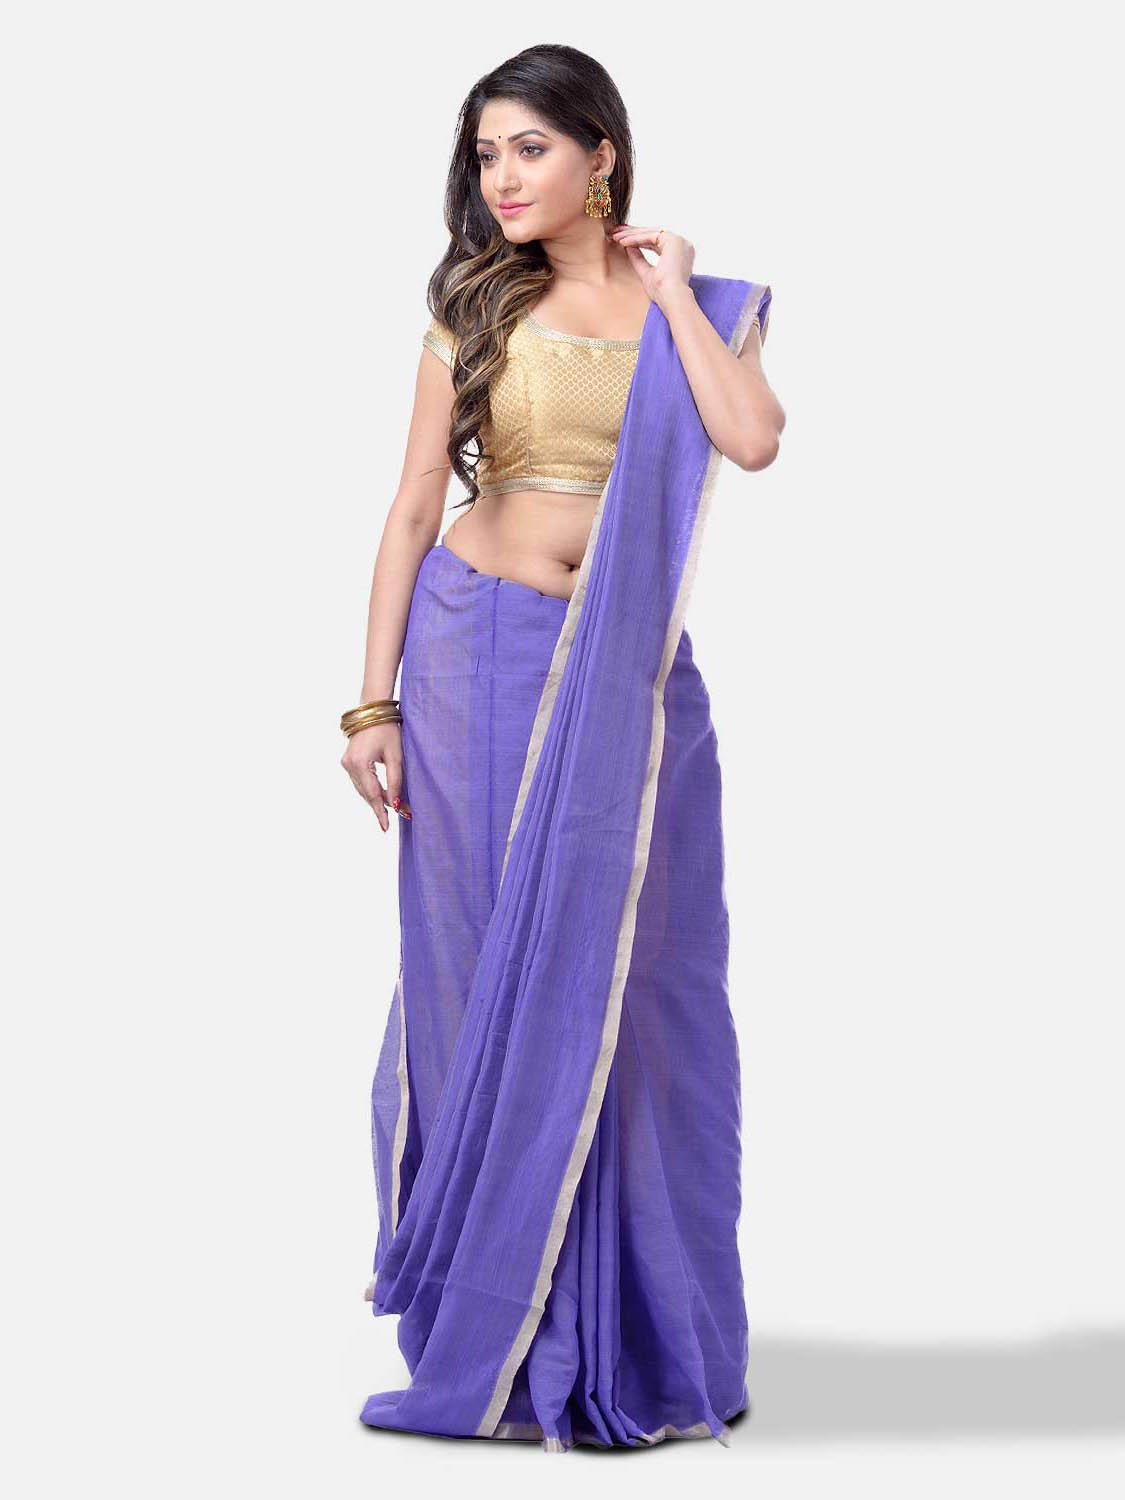 Women`s Cotton Silk and Bengal Soft Khadi Cotton Mix Ghicha Handloom Saree With Blouse Piece (Purple)